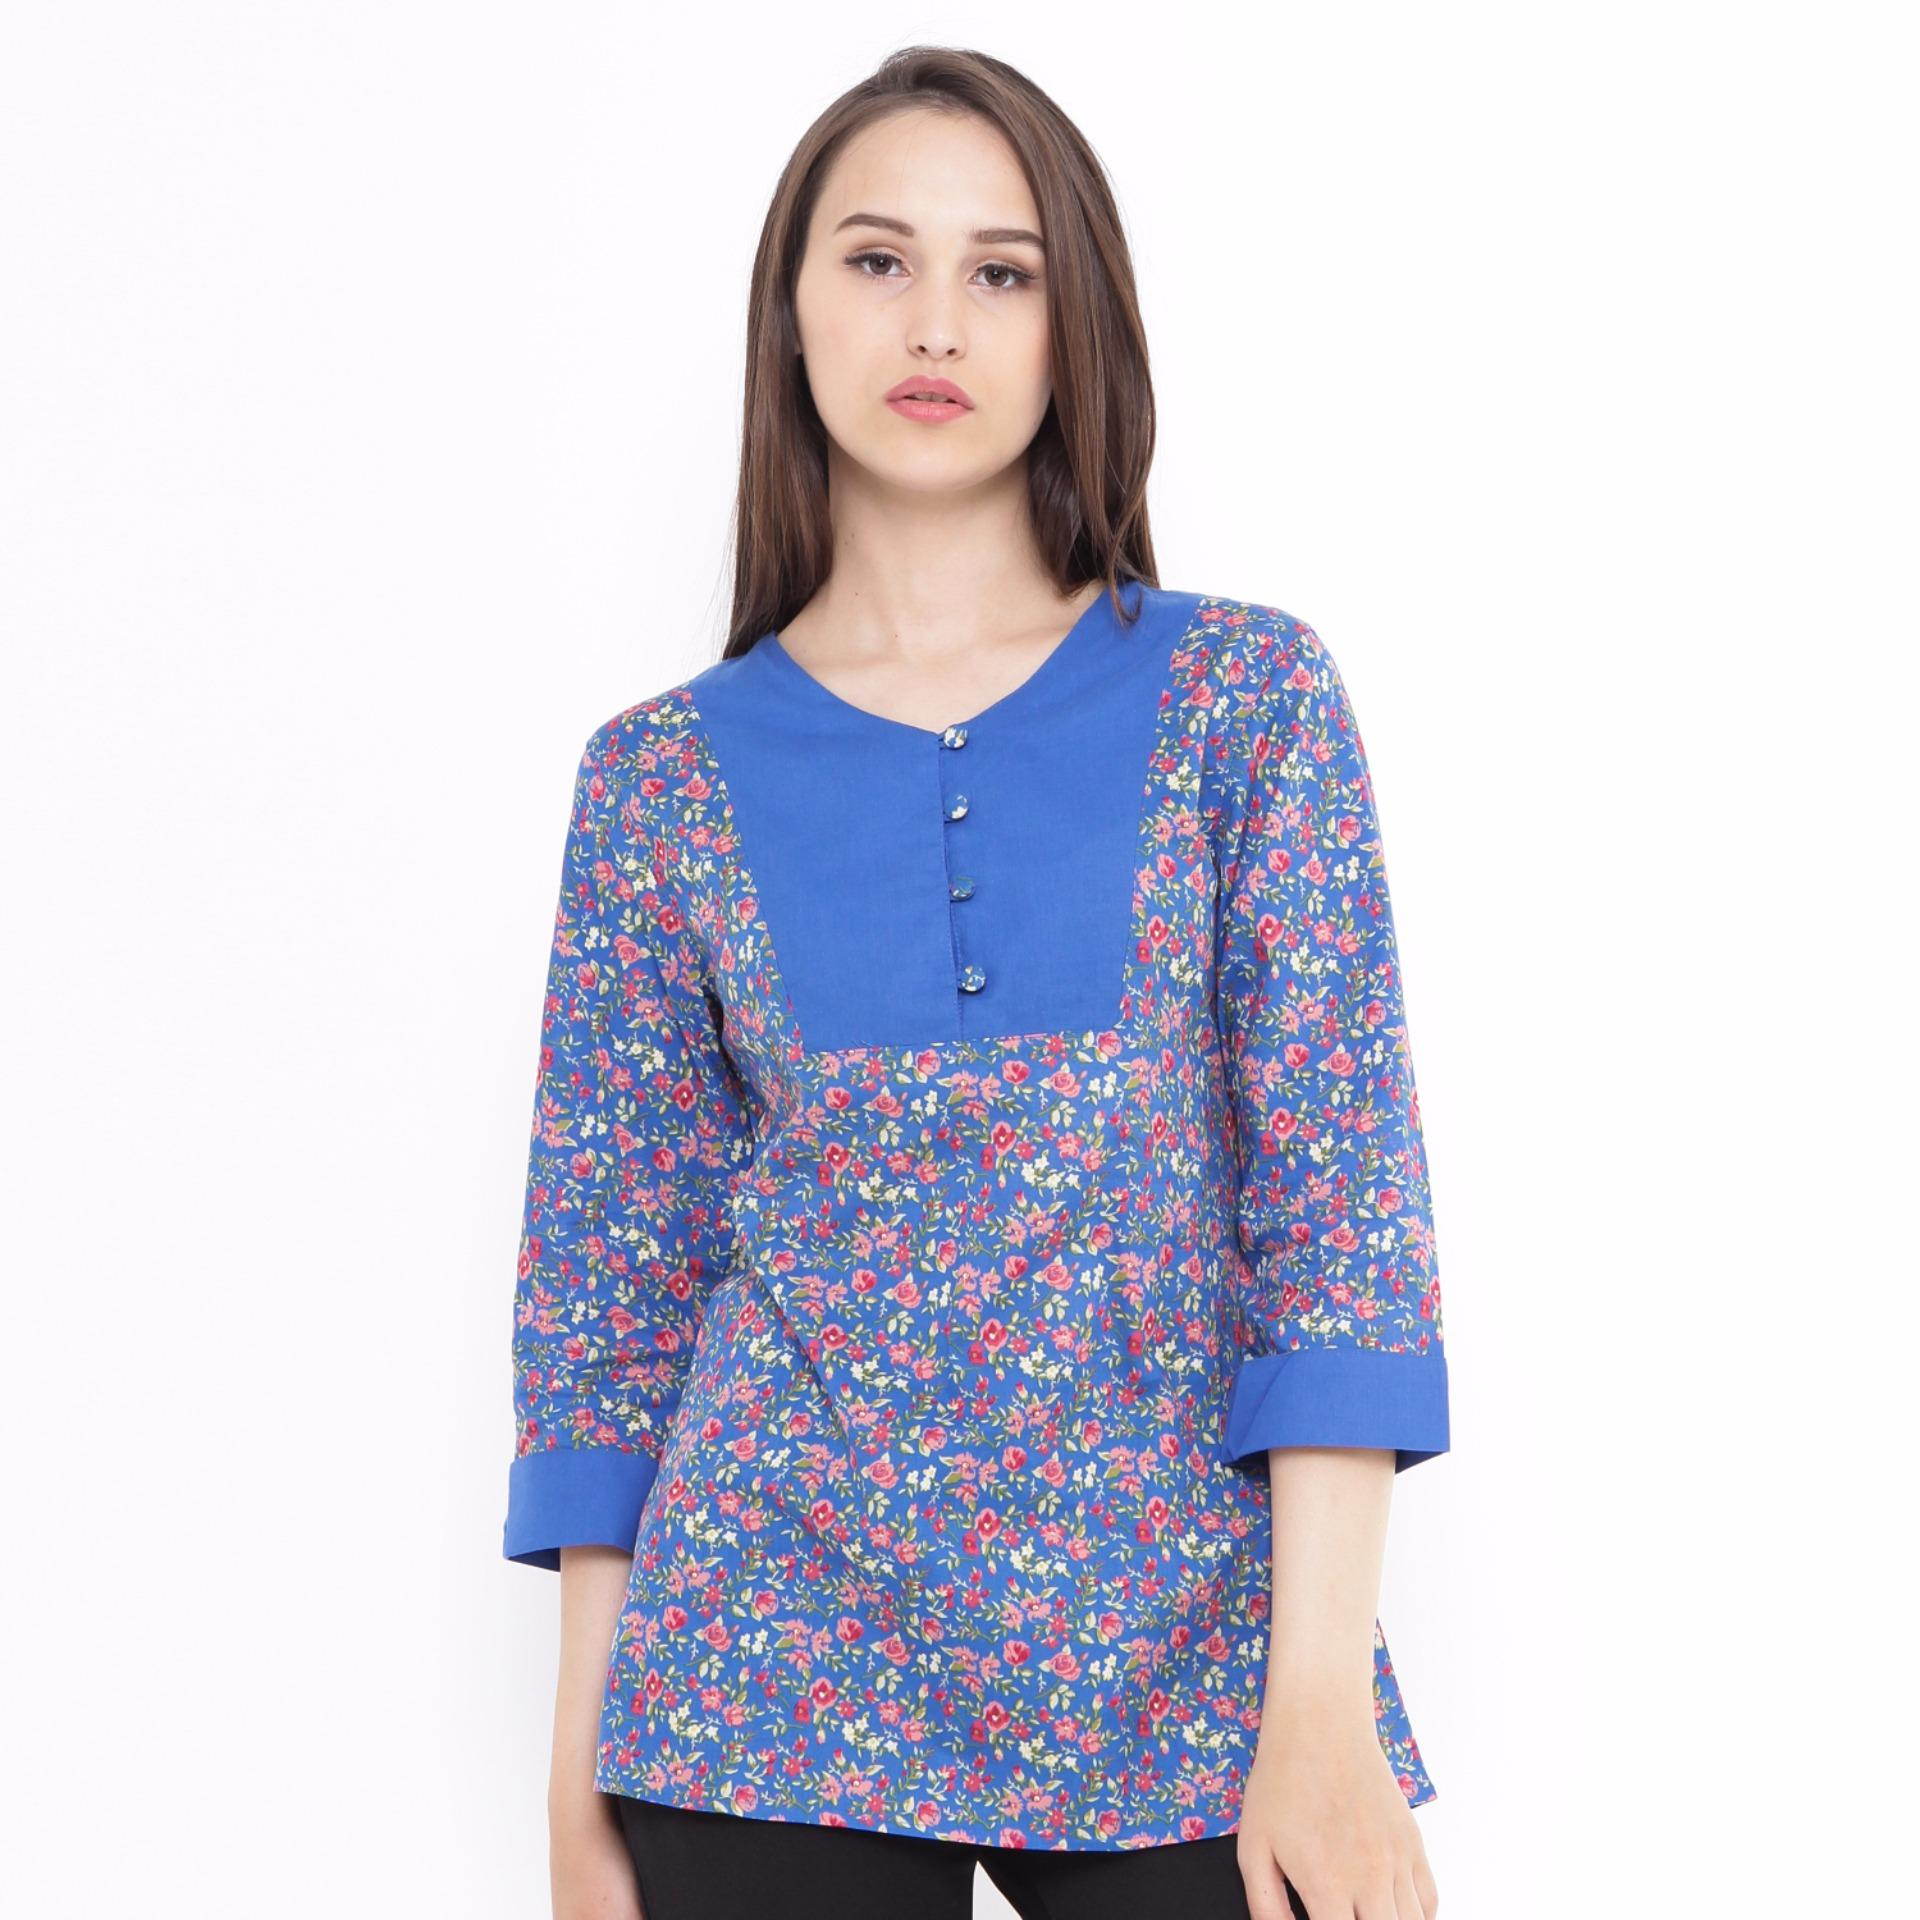 Spesifikasi Tunic Floral Combination Blue Mobile Power Ladies L8332 Lengkap